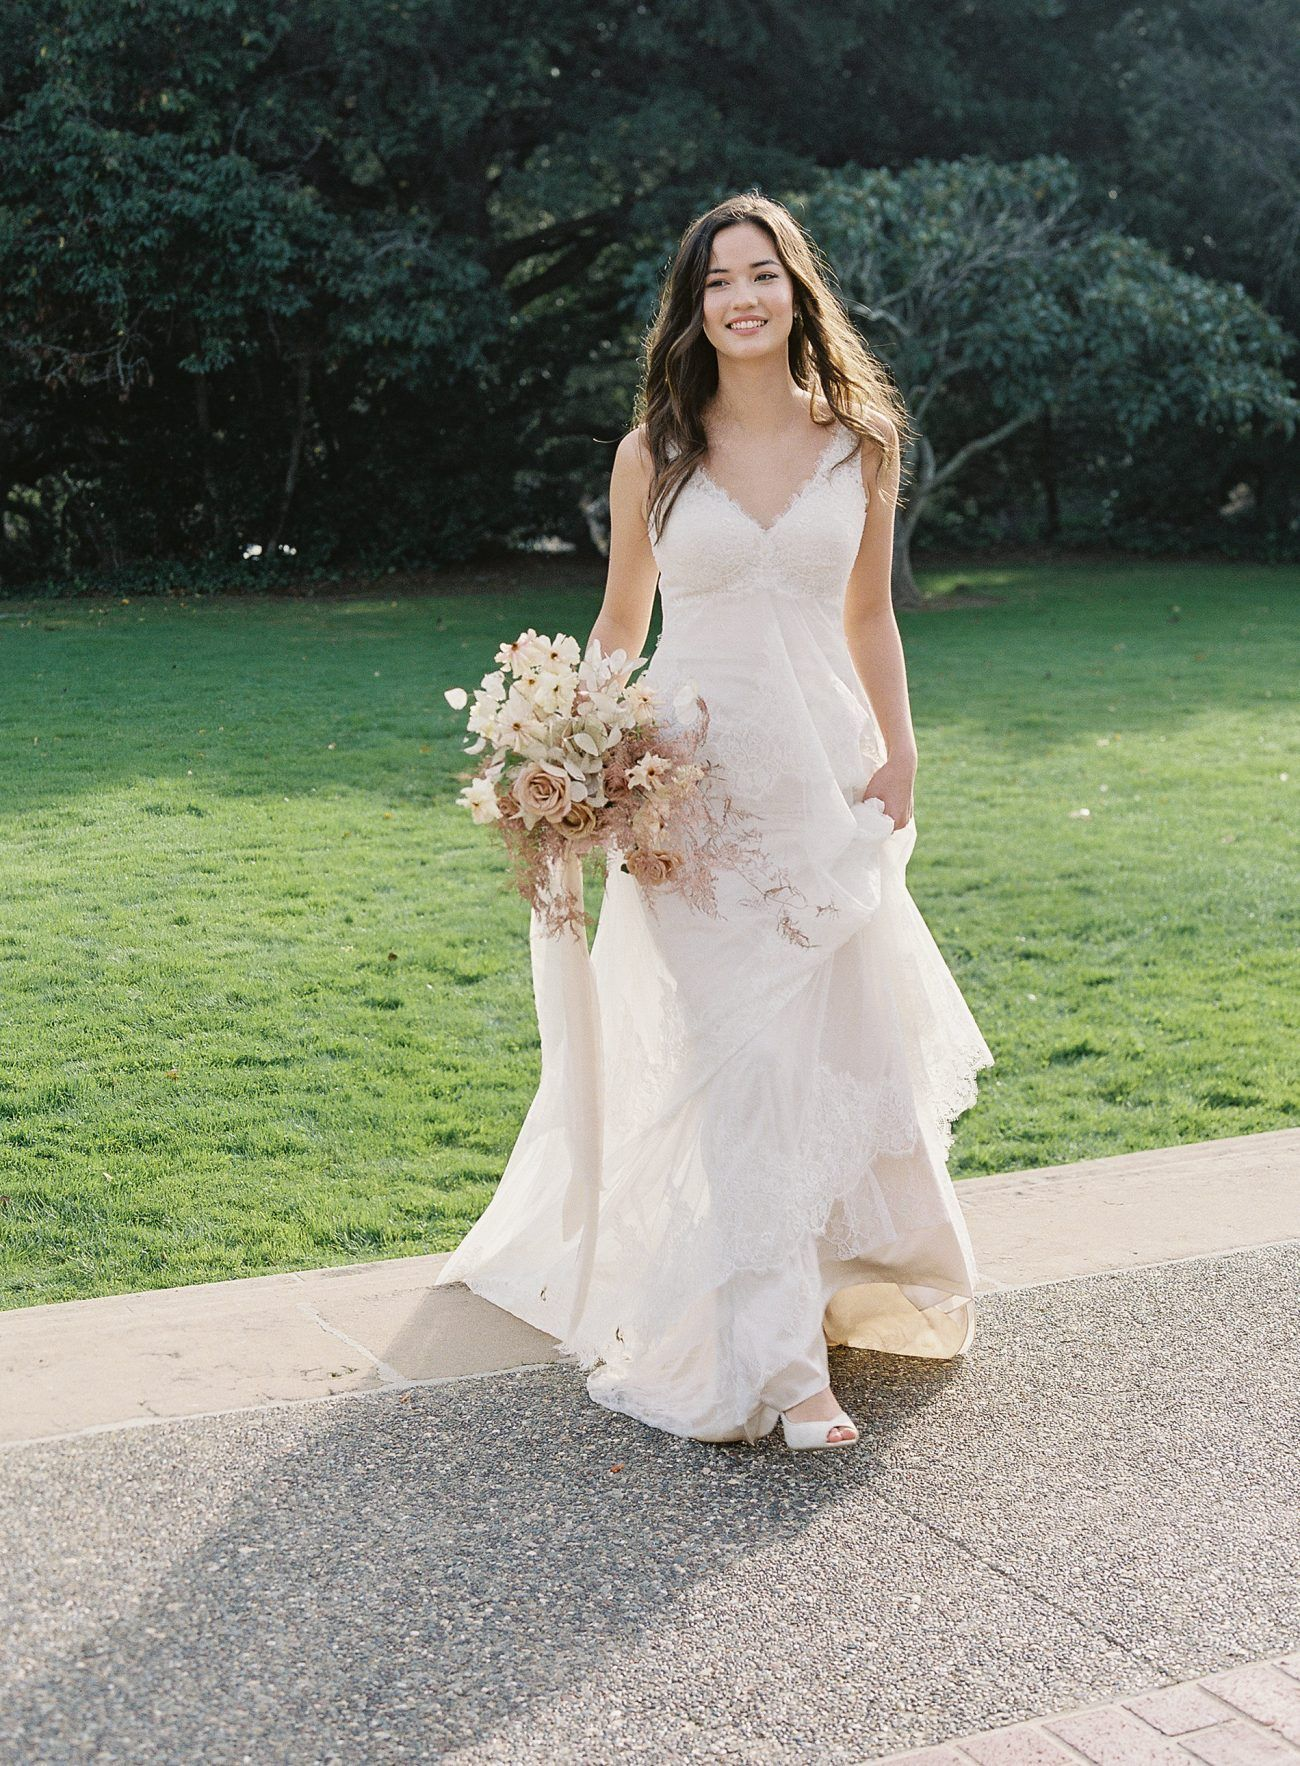 Scalloped A Line Wedding Dress With Double Straps David S Bridal Sweet Wedding Dresses Wedding Dresses A Line Wedding Dress [ 1766 x 1300 Pixel ]